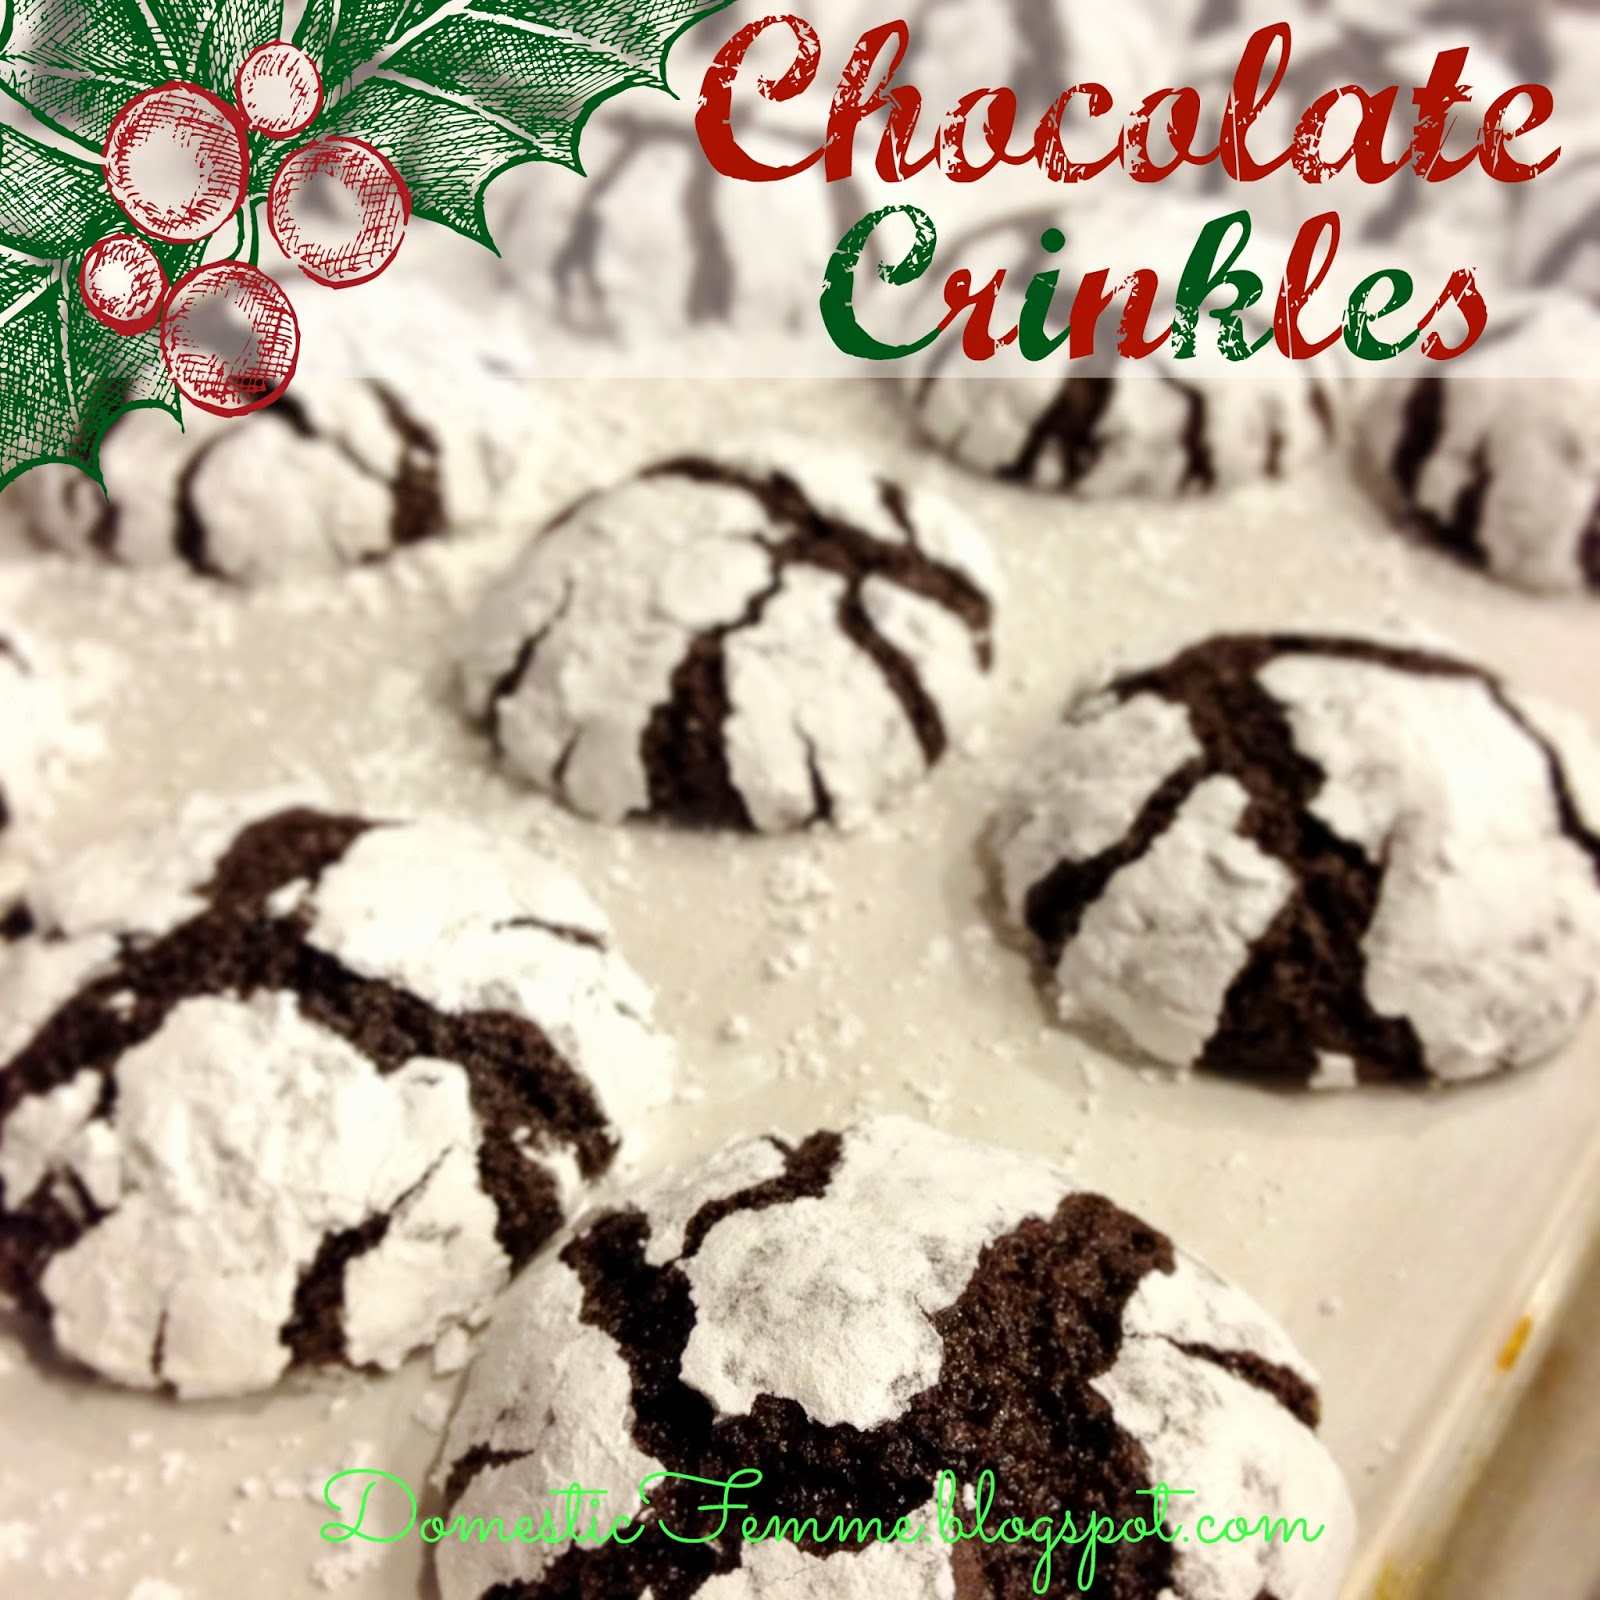 Domestic Femme Cookie Perfection Chocolate Crinkles